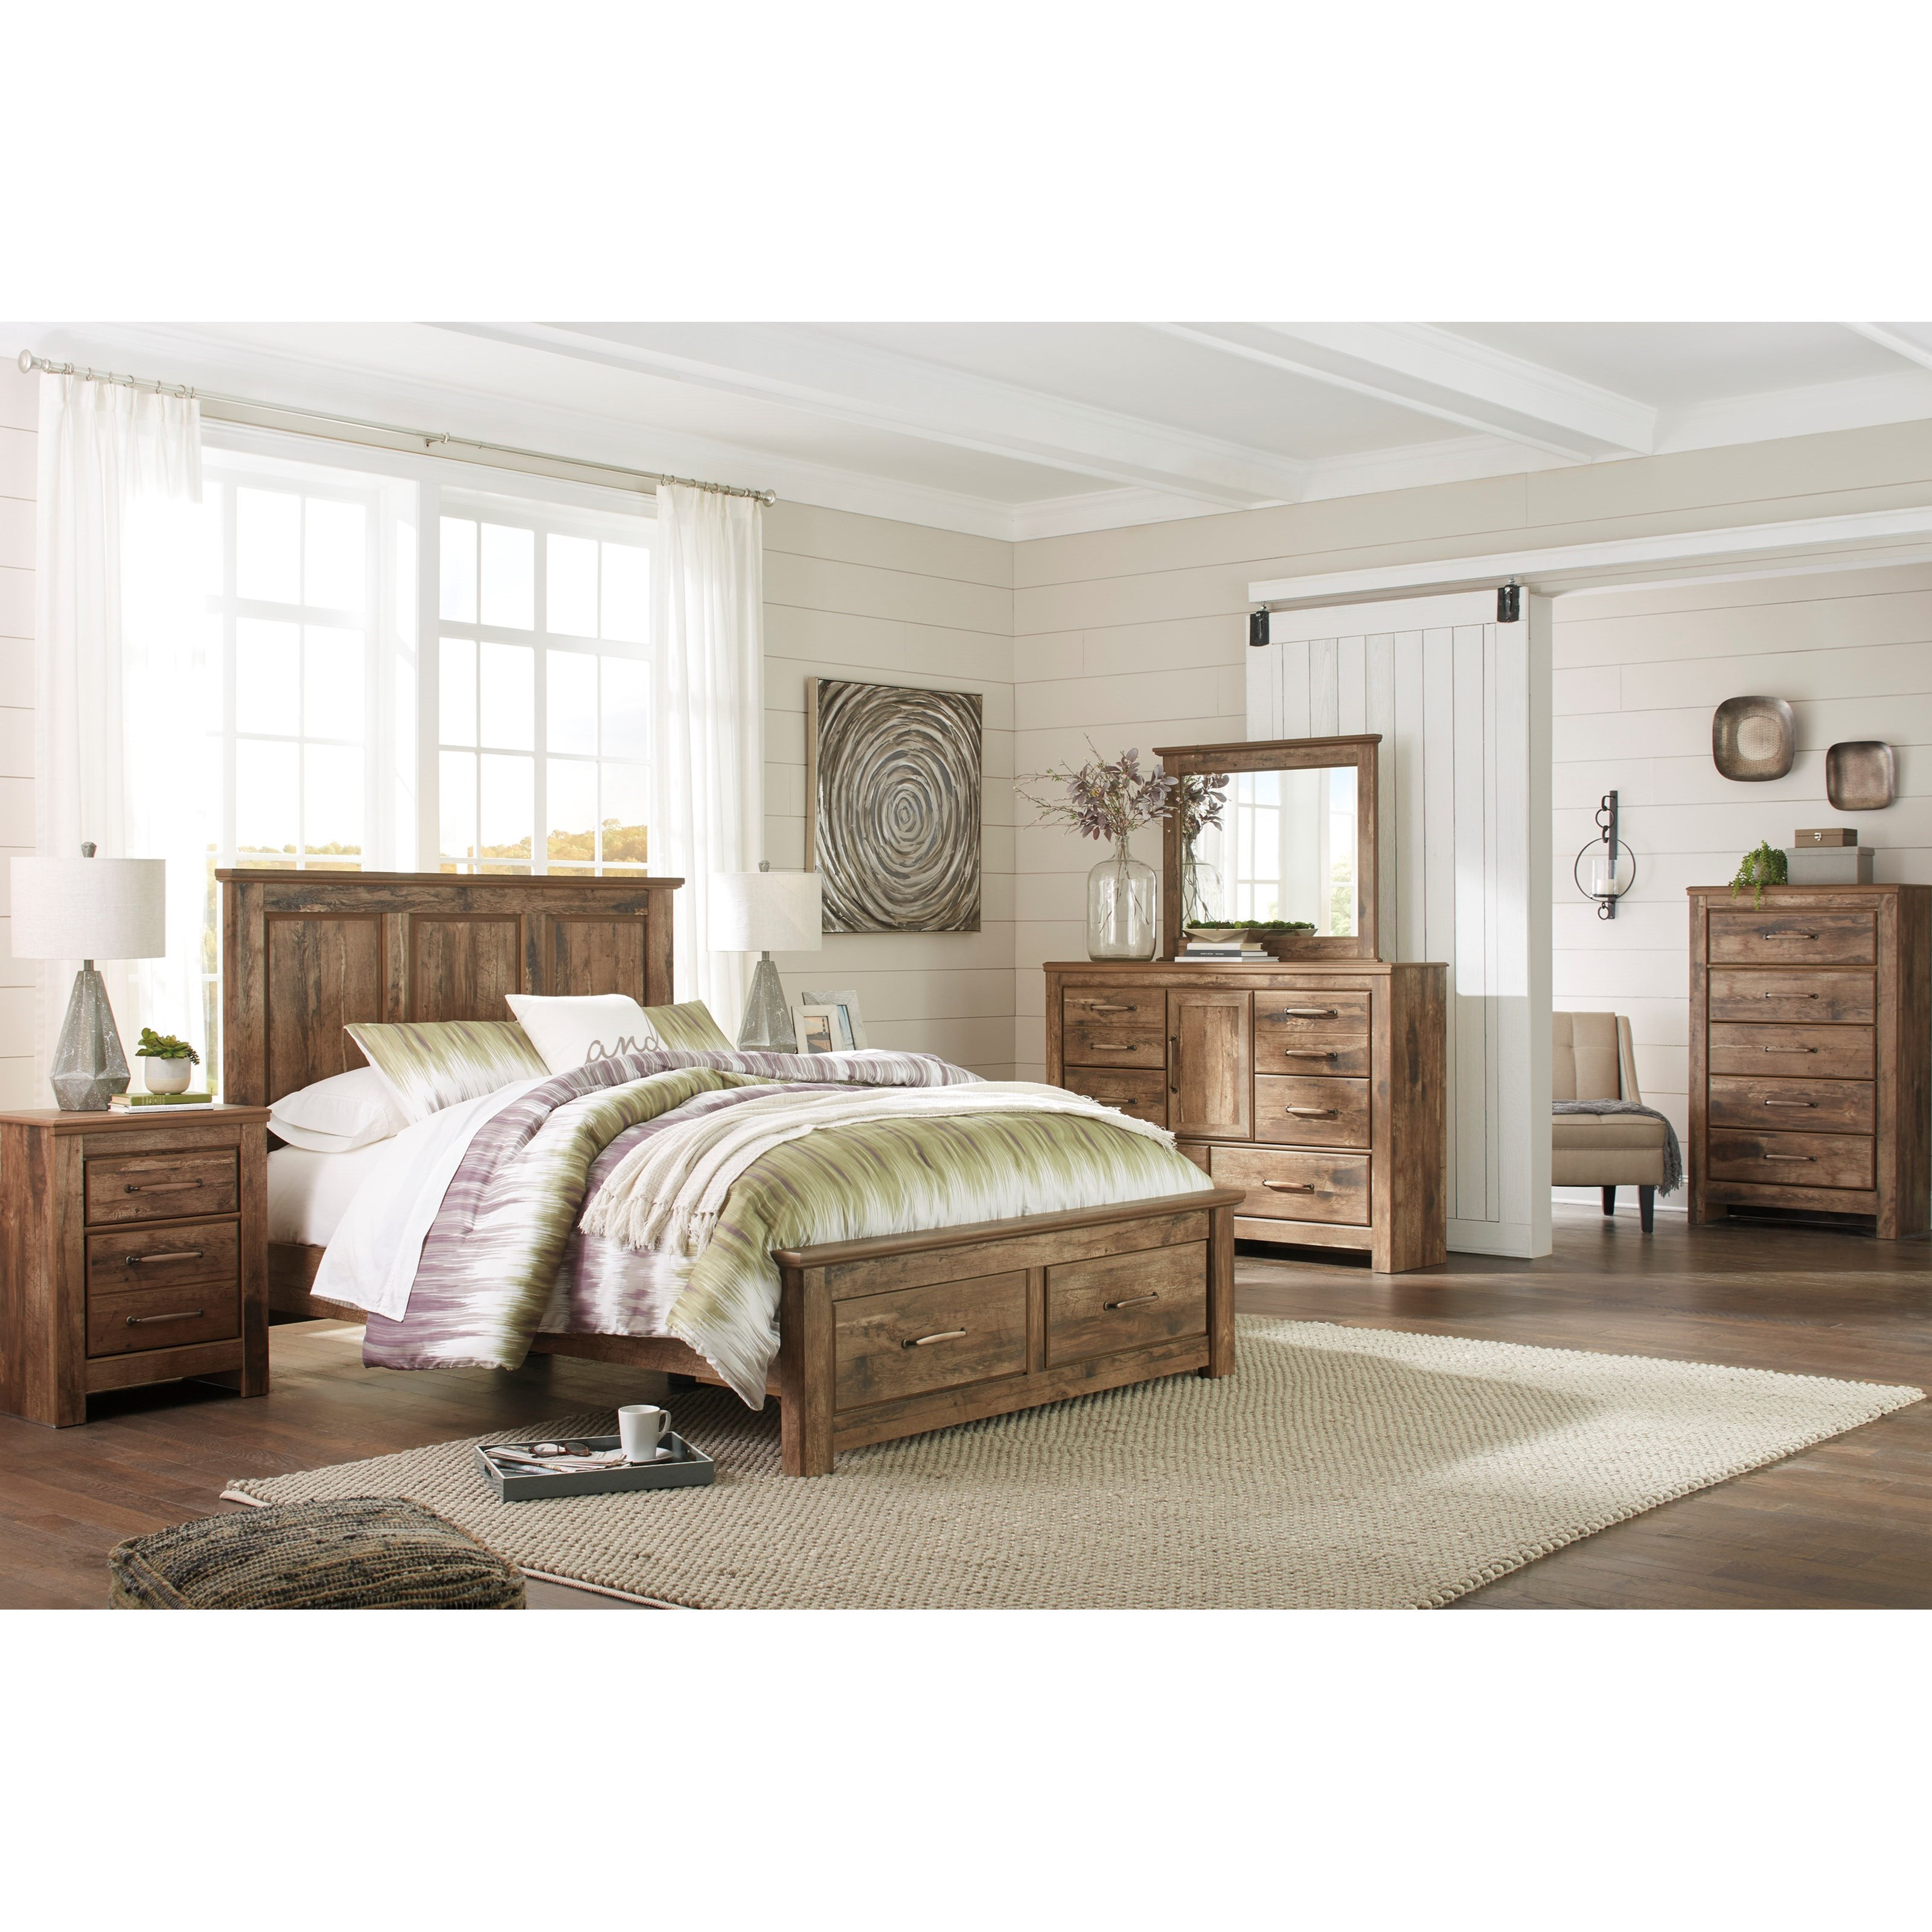 Signature design by ashley blaneville king bedroom group for Bedroom furniture groups